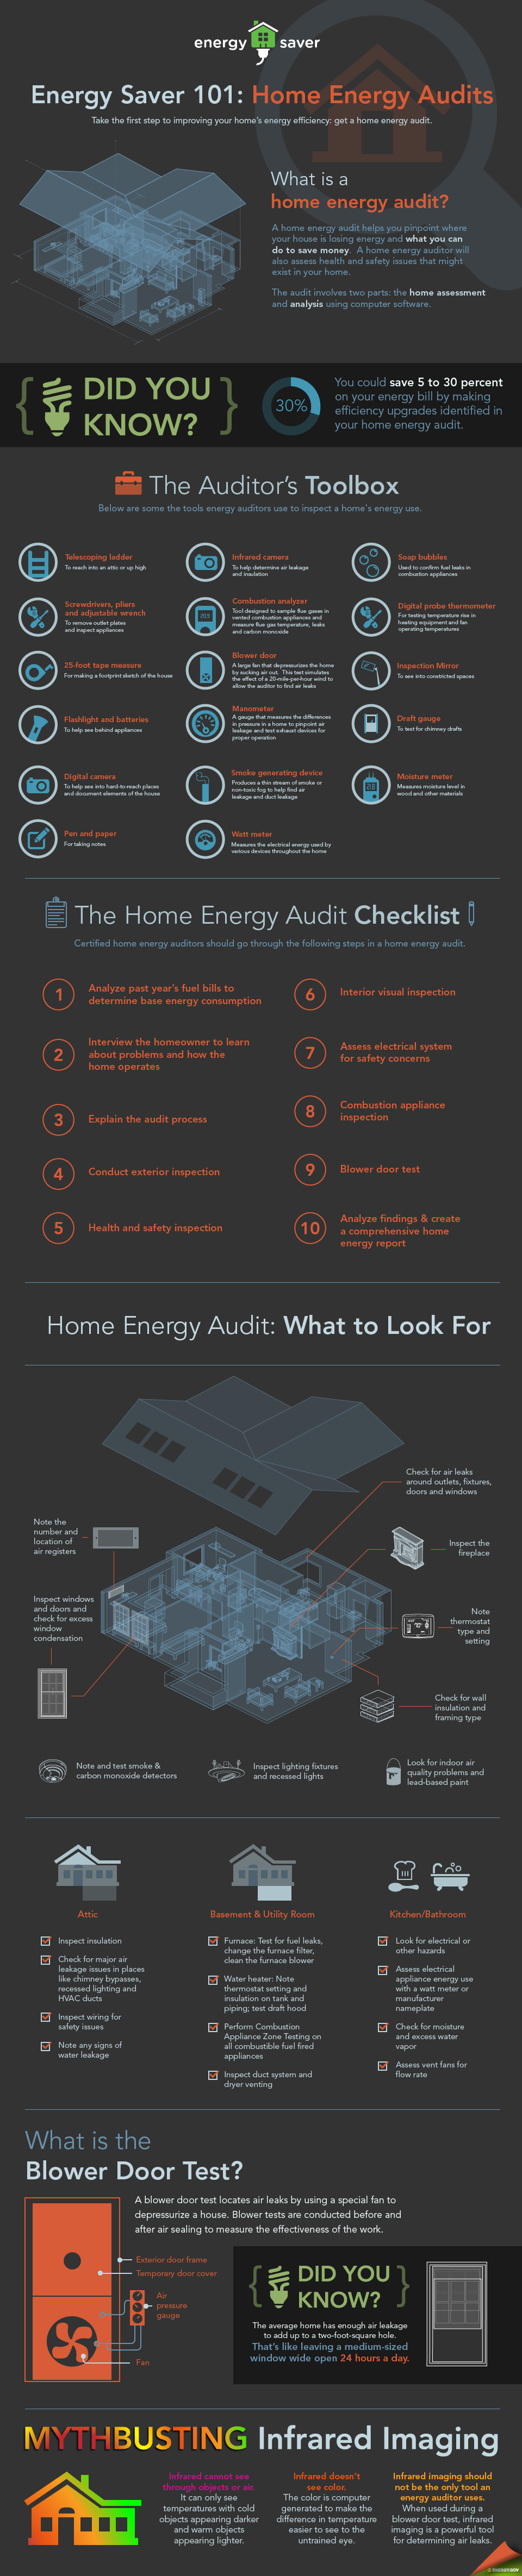 Home Energy Audits.png